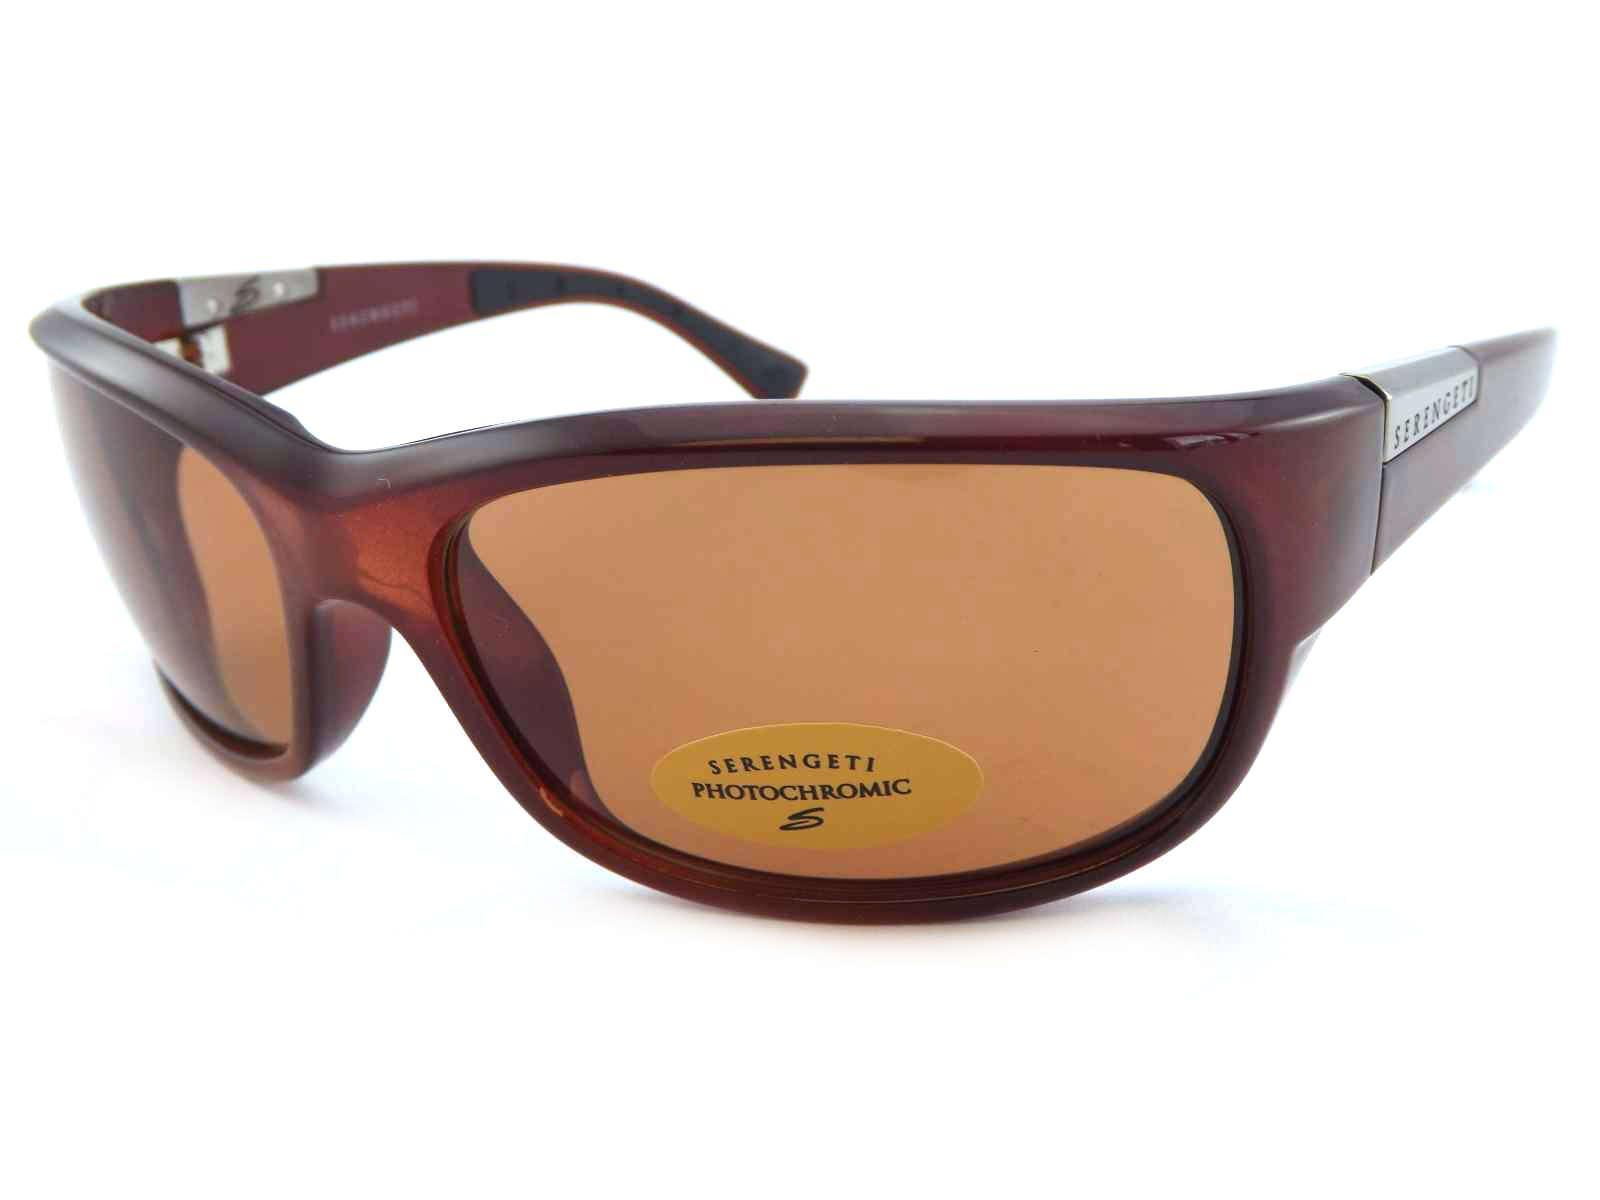 Serengeti Drivers Sunglasses  to bordeaux drivers sunglasses 7056